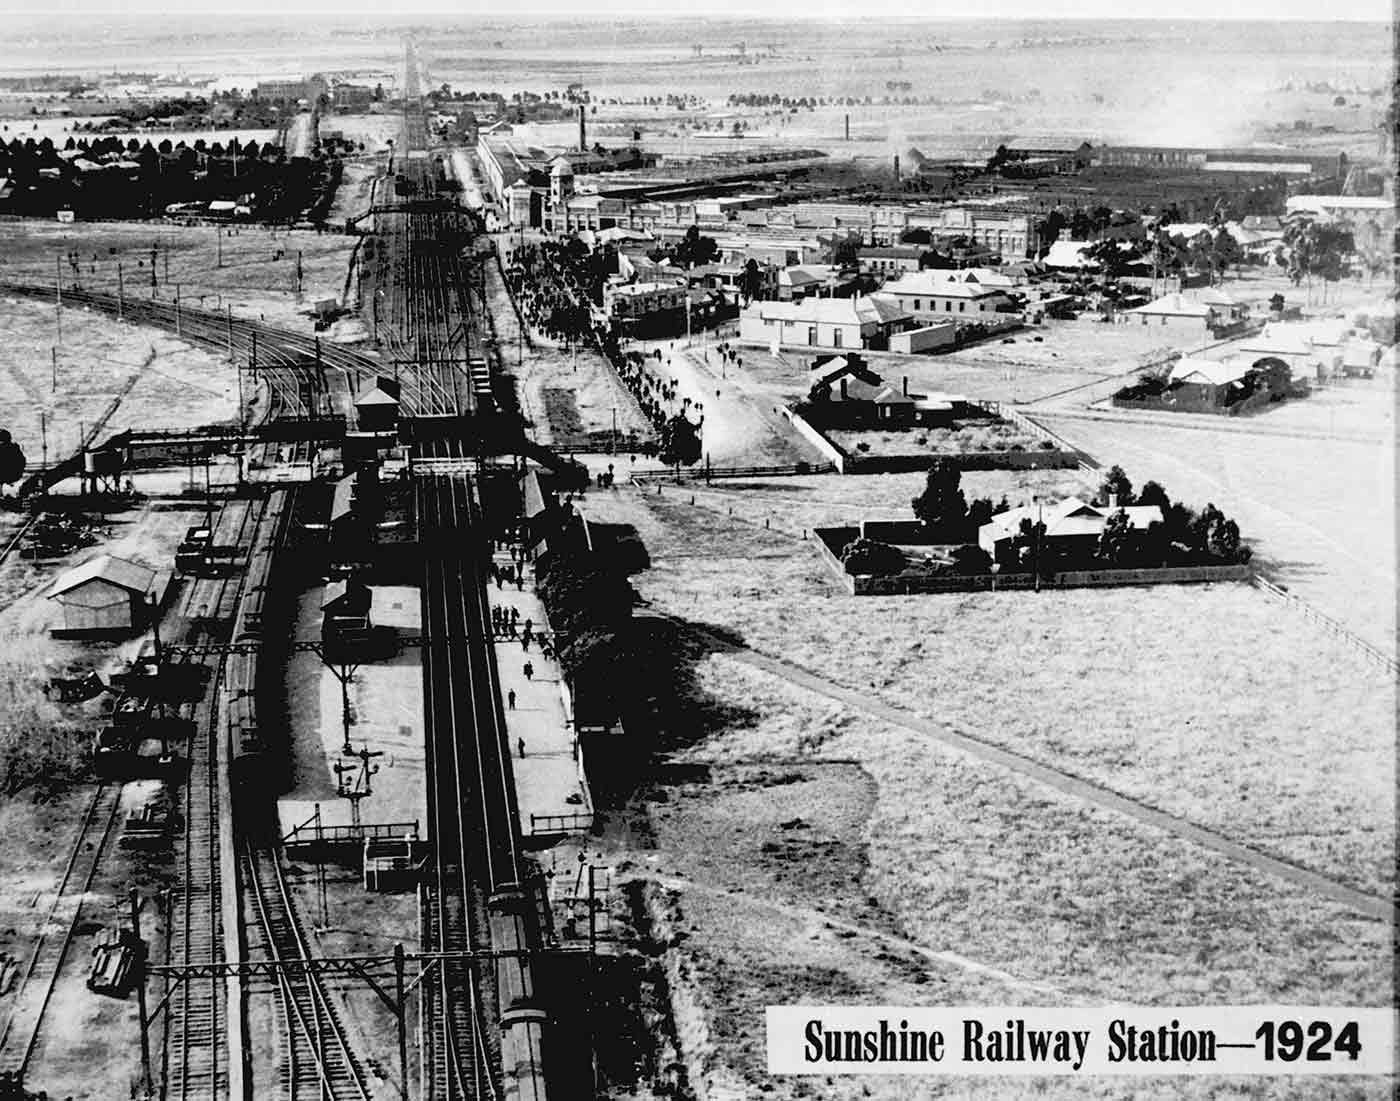 A black and white photograph of Sunshine railway station.